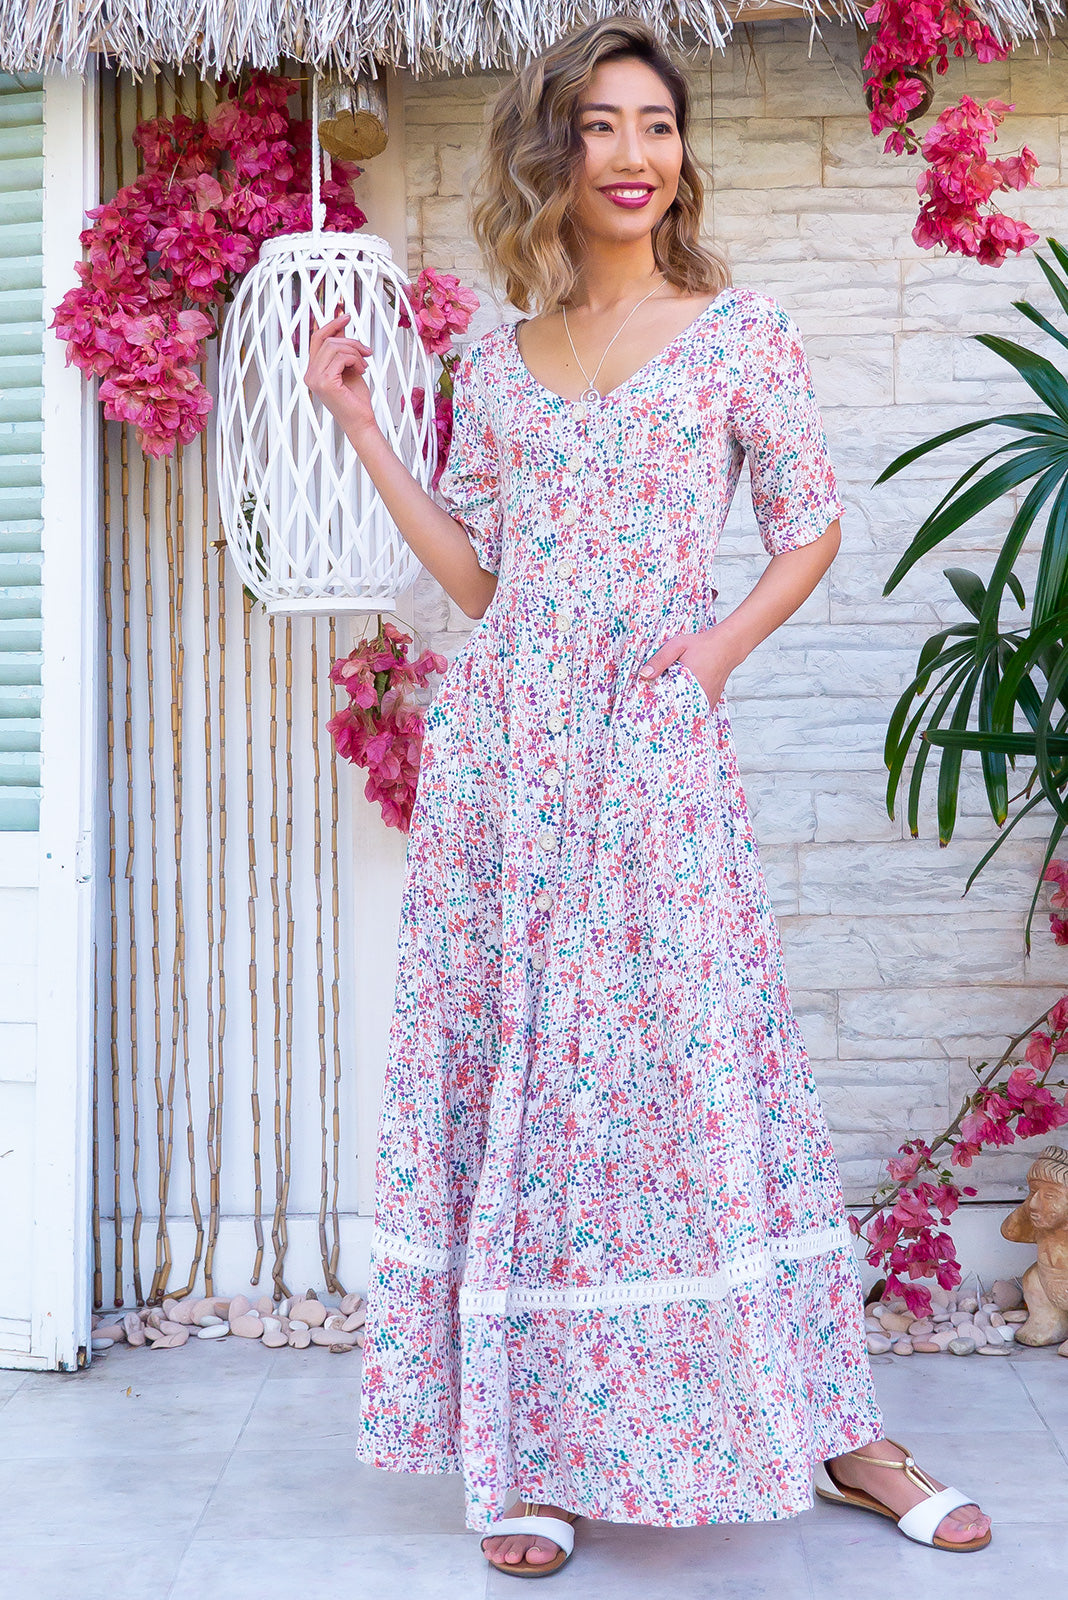 The Georgiana Field Flowers White Maxi Dress features functional button front, buttons and side tabs at waist, side pocket, tiered skirt with lace insert and 100% rayon in white base with sweet floral print.